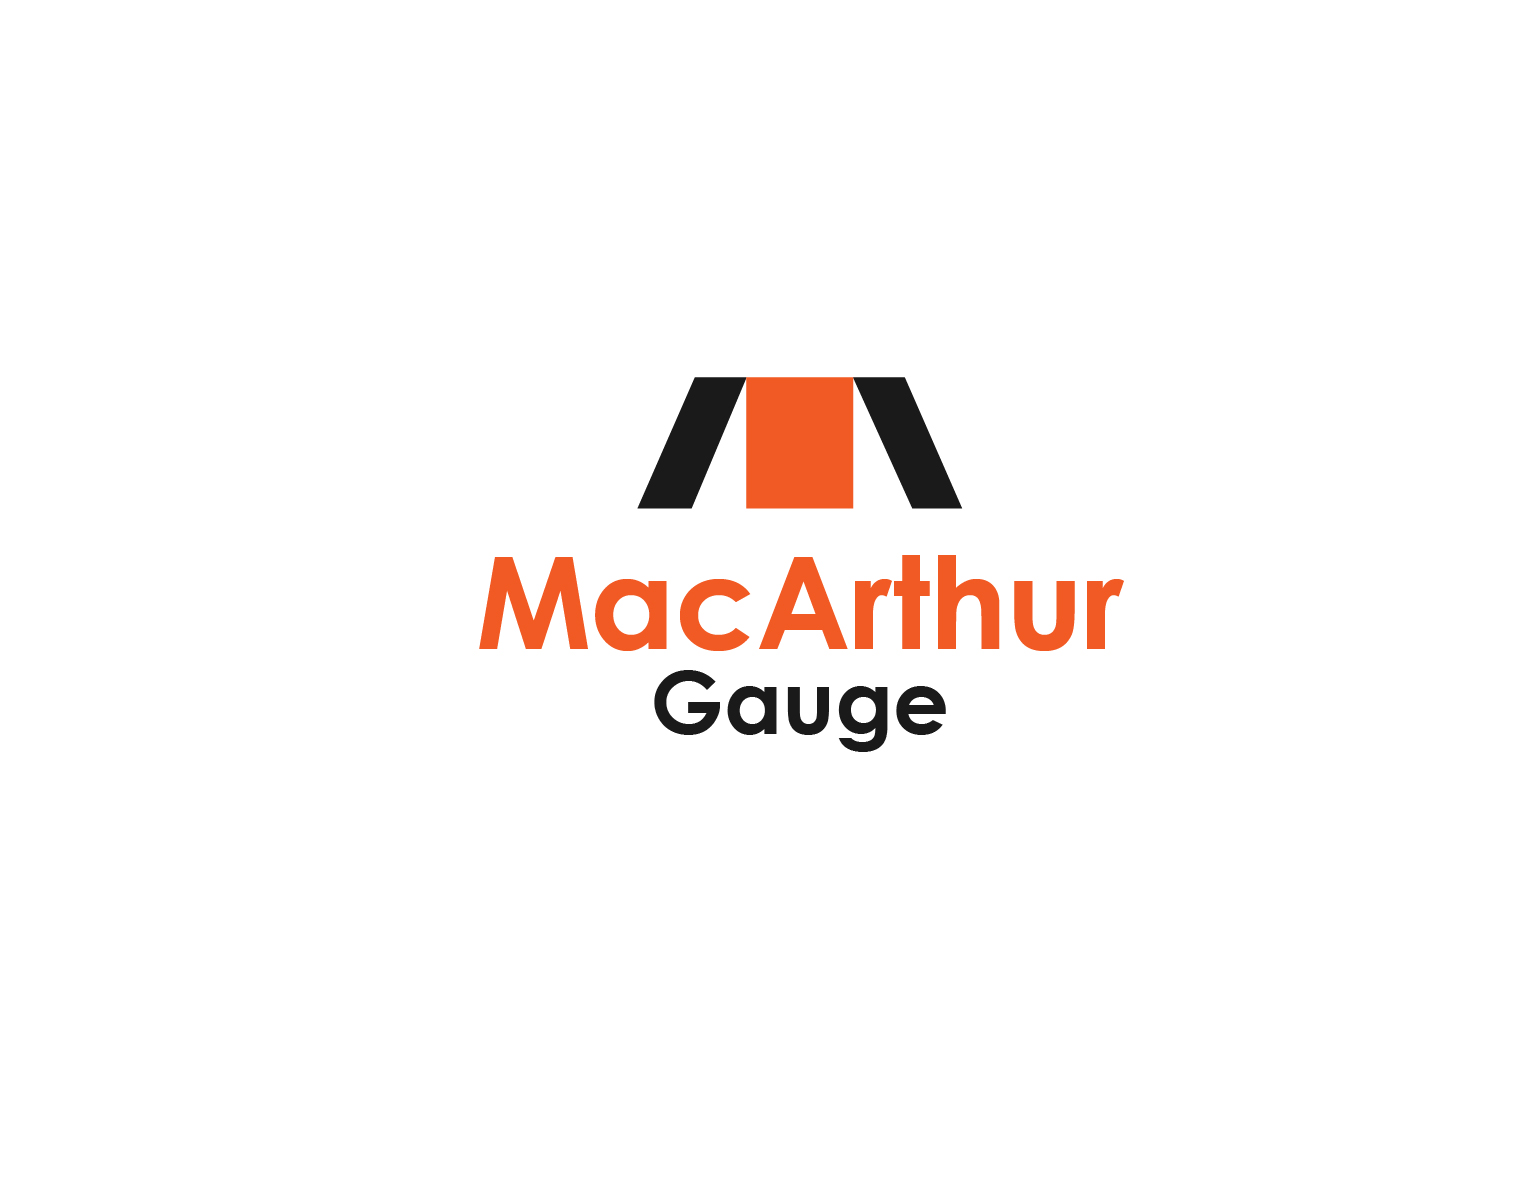 Logo Design by 3draw - Entry No. 168 in the Logo Design Contest Fun Logo Design for MacArthur Gauge.